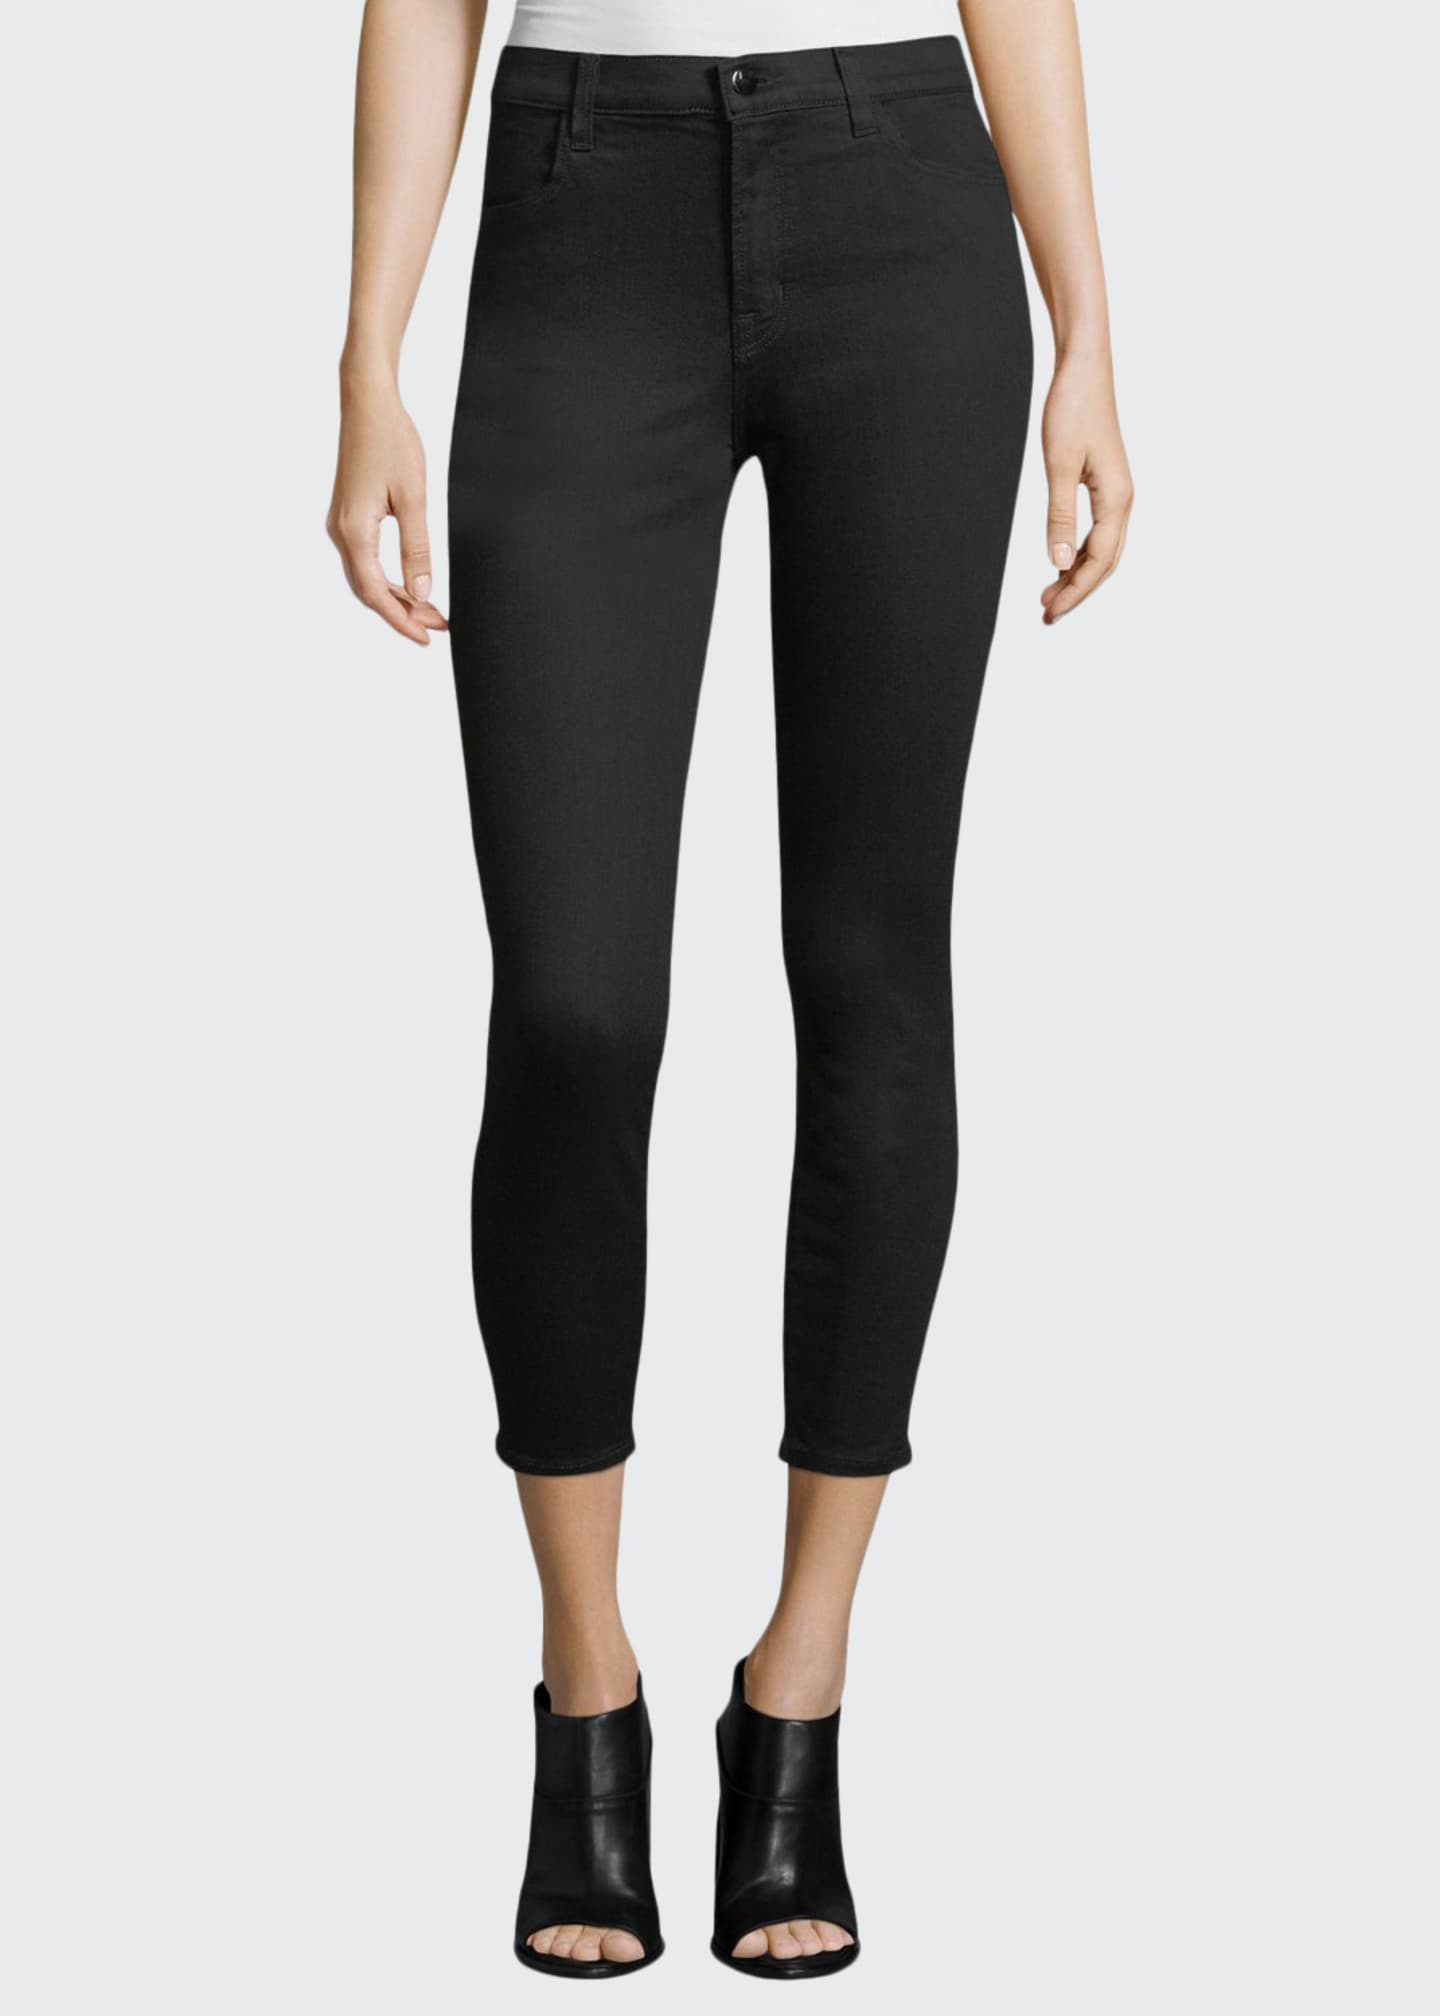 J Brand Alana Photo-Ready High-Rise Super Skinny Crop